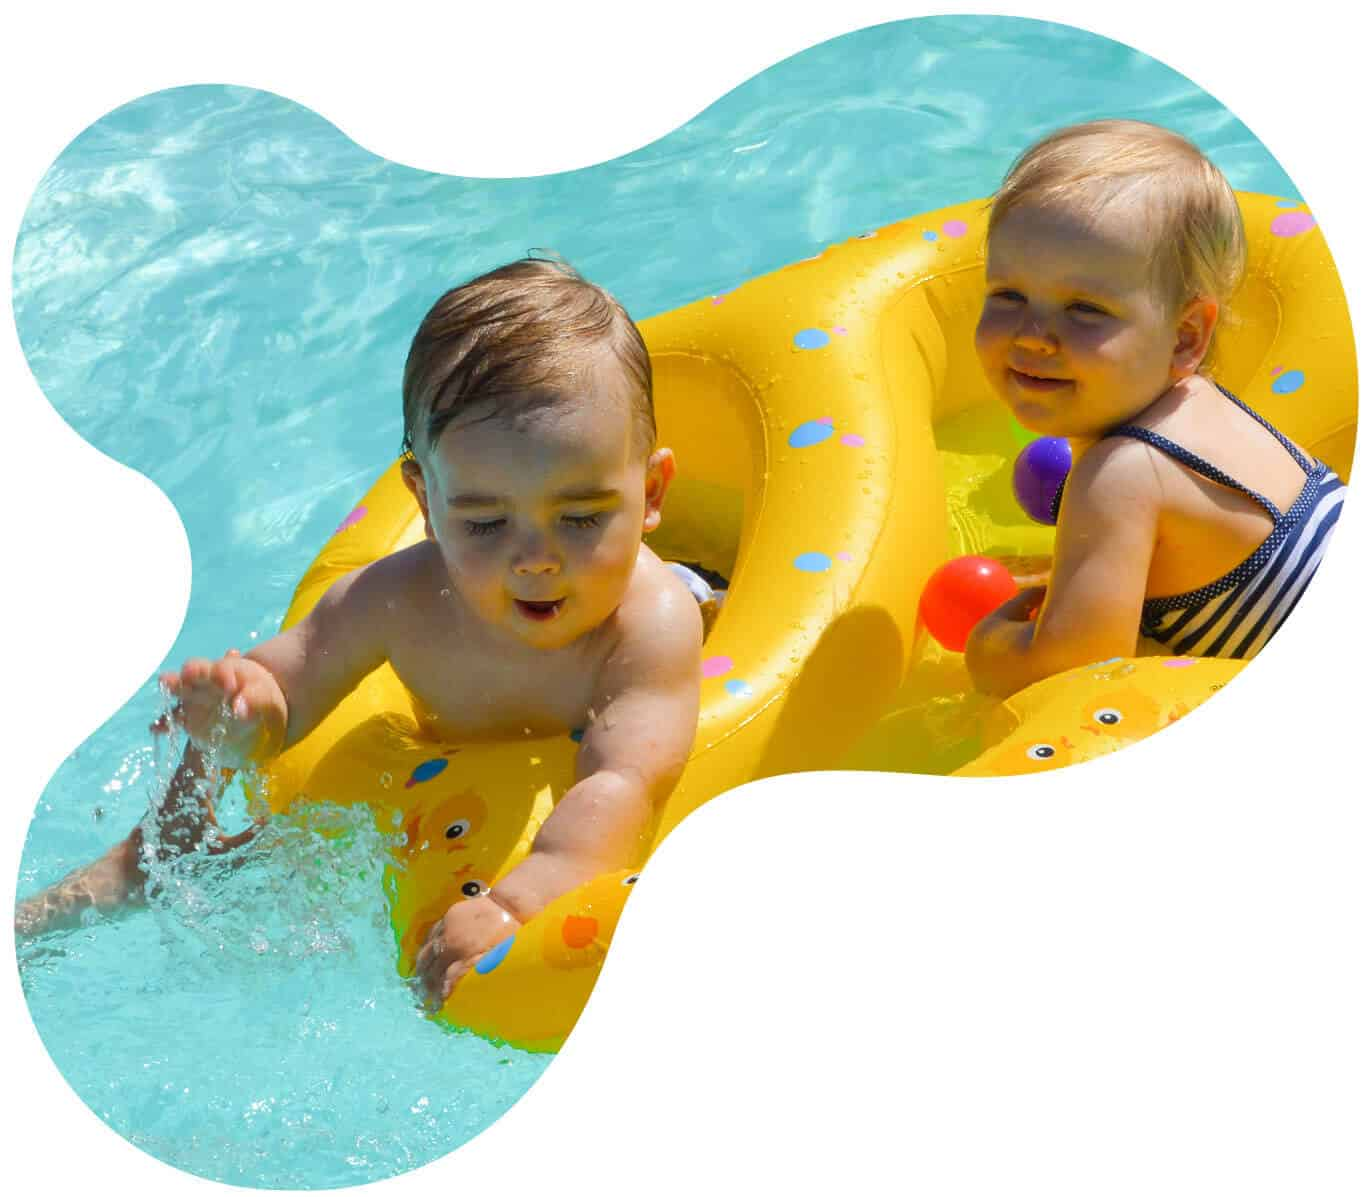 Twin Swim Float - Duo Float - Double Float - Tweeling Zwemband - TwinSwimFloat